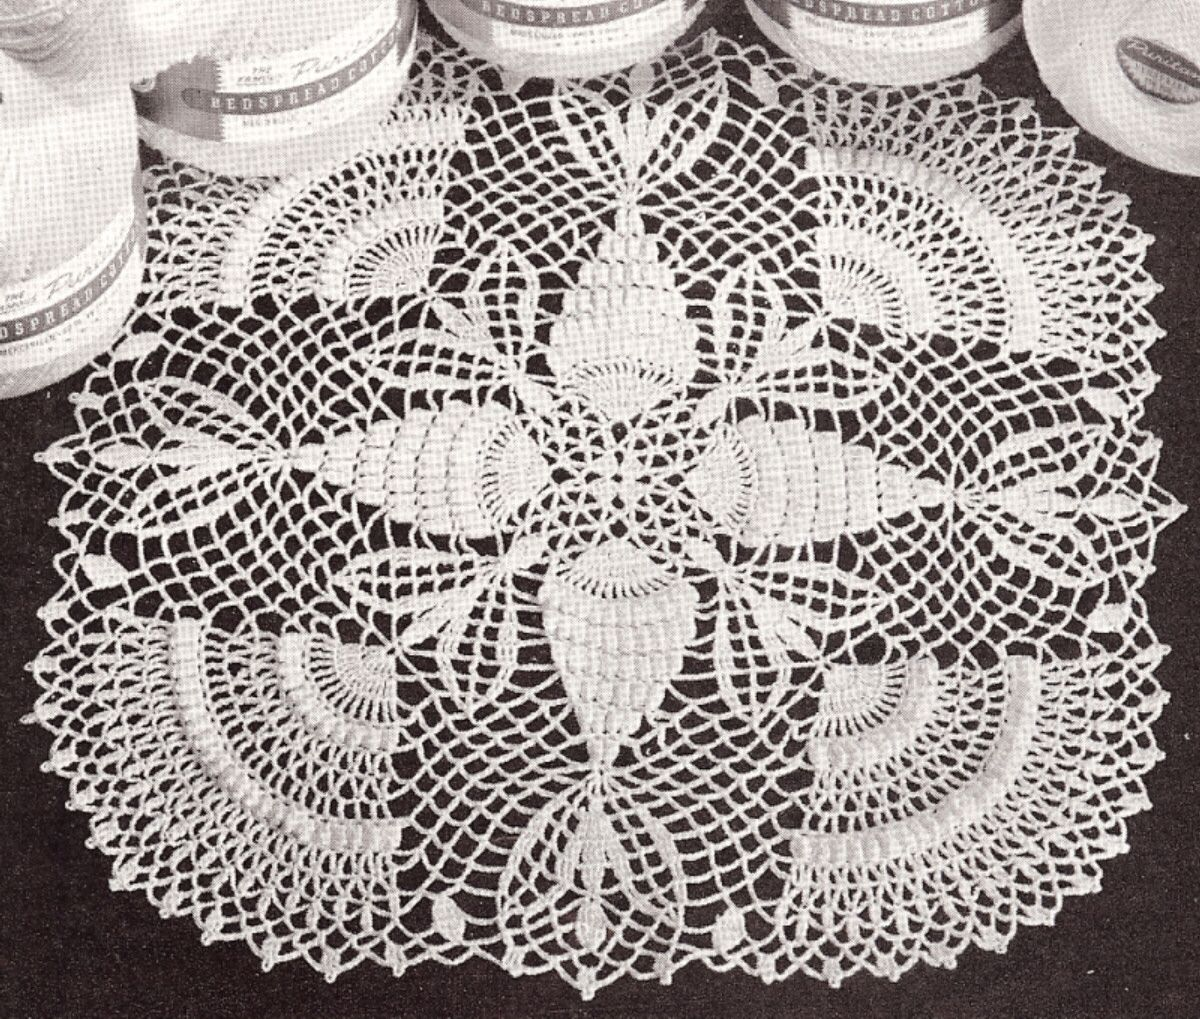 Filet Crochet Doily Patterns With Diagrams Year Of Clean Water